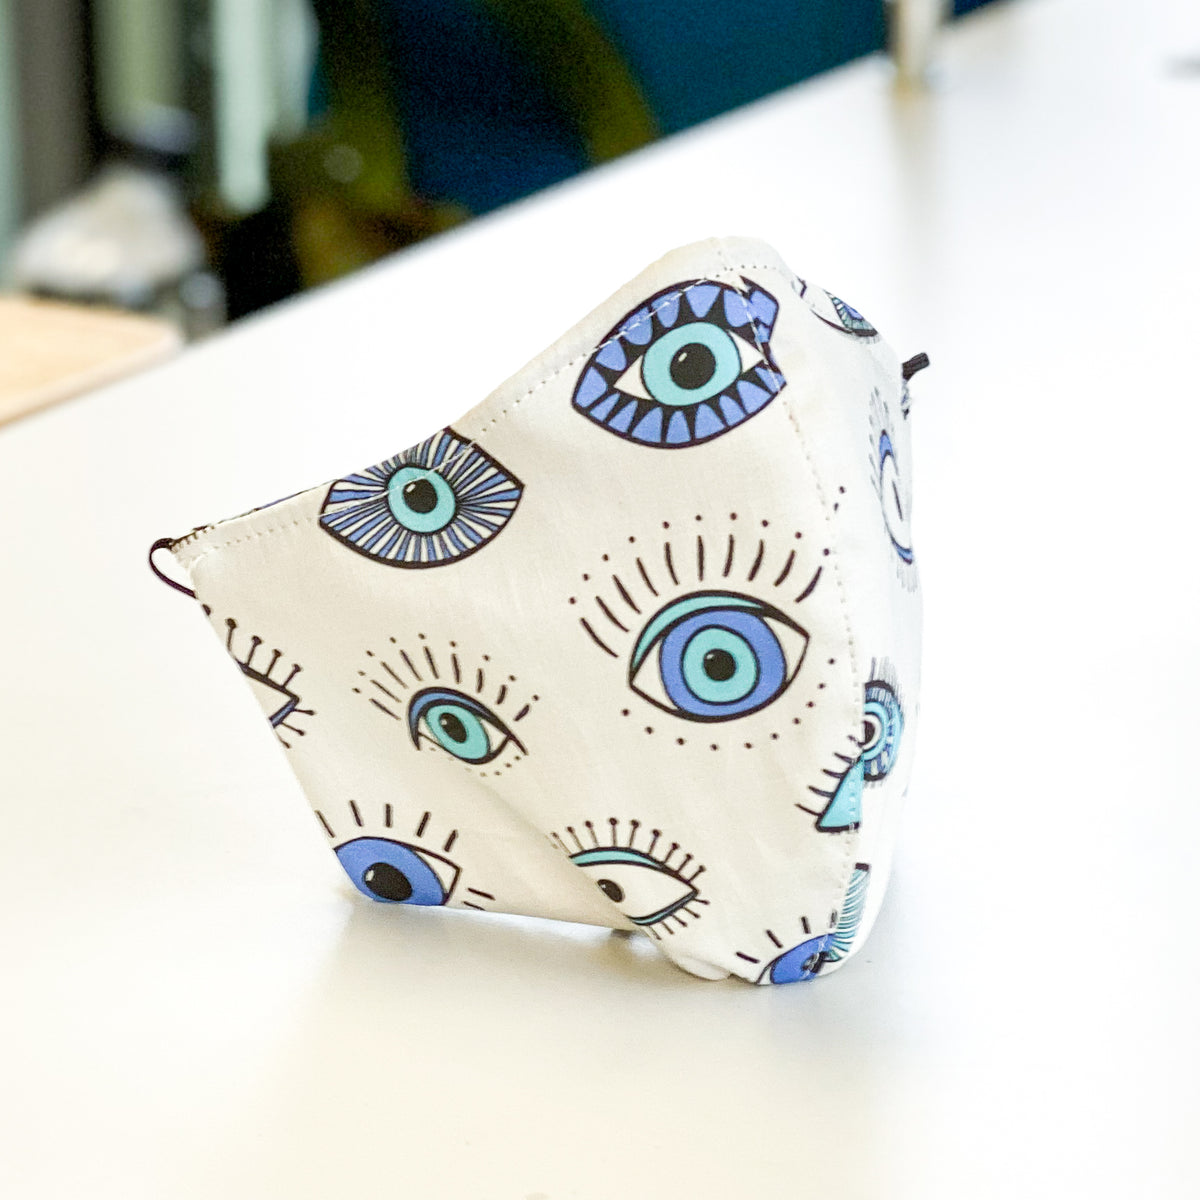 Coronavirus mask with eye doctor and evil eye theme print by David Peck